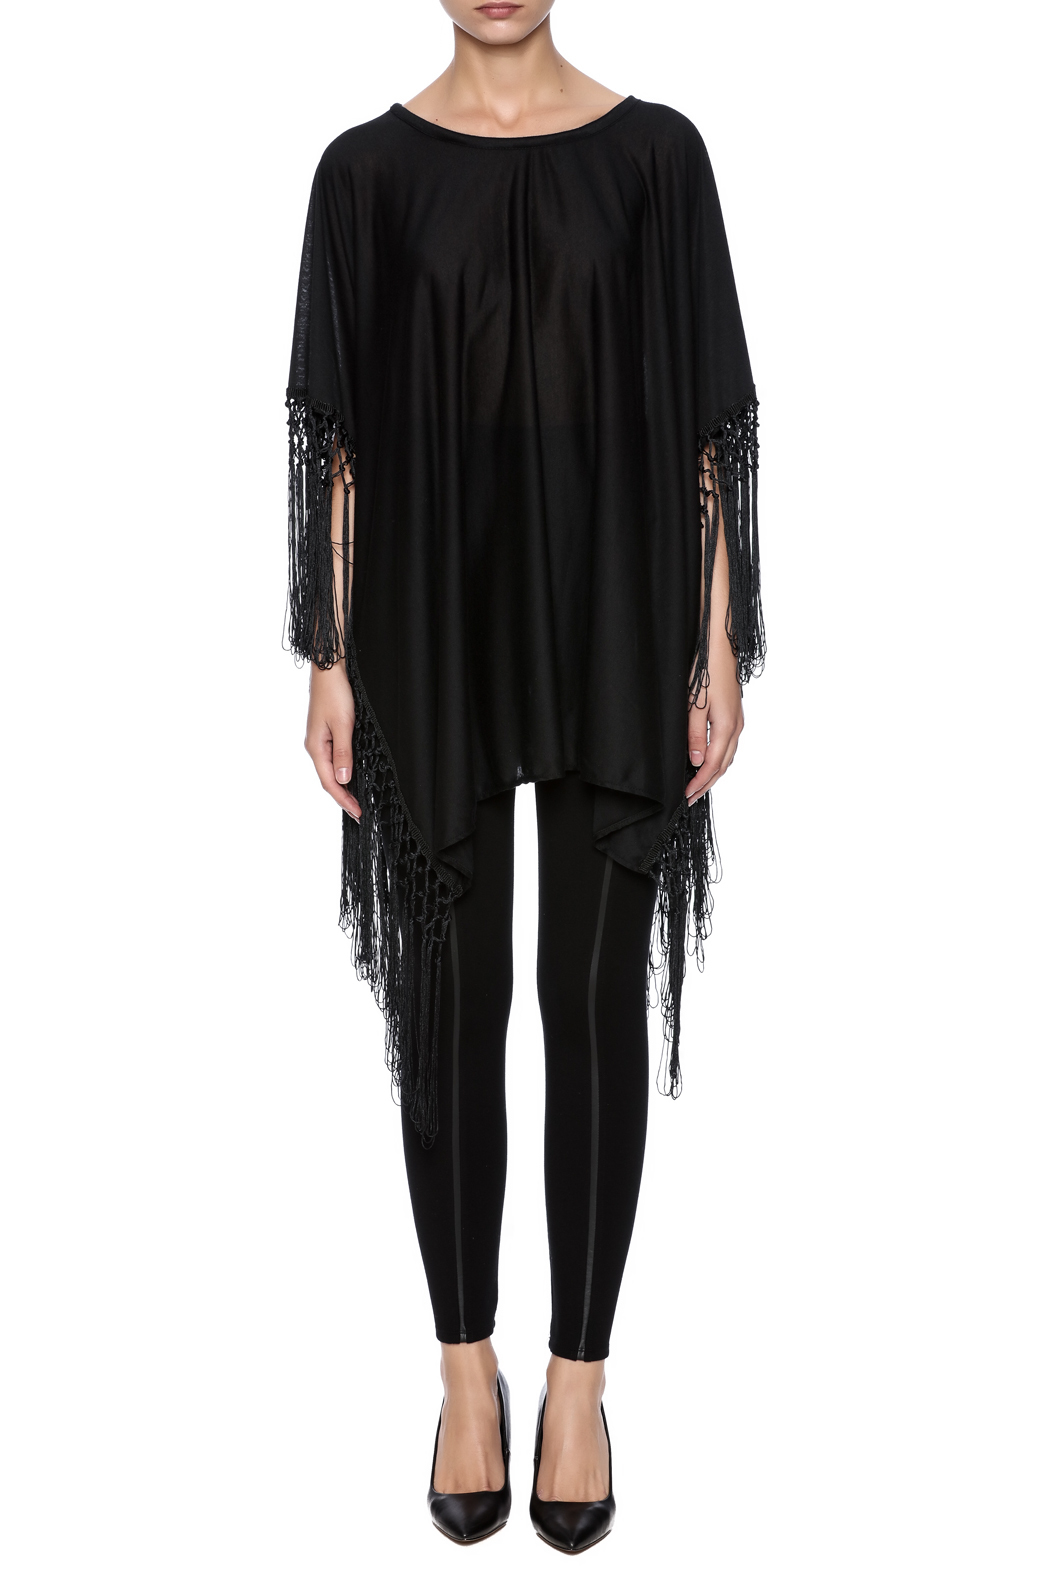 Two's Company Fringed T-Shirt Poncho - Front Cropped Image